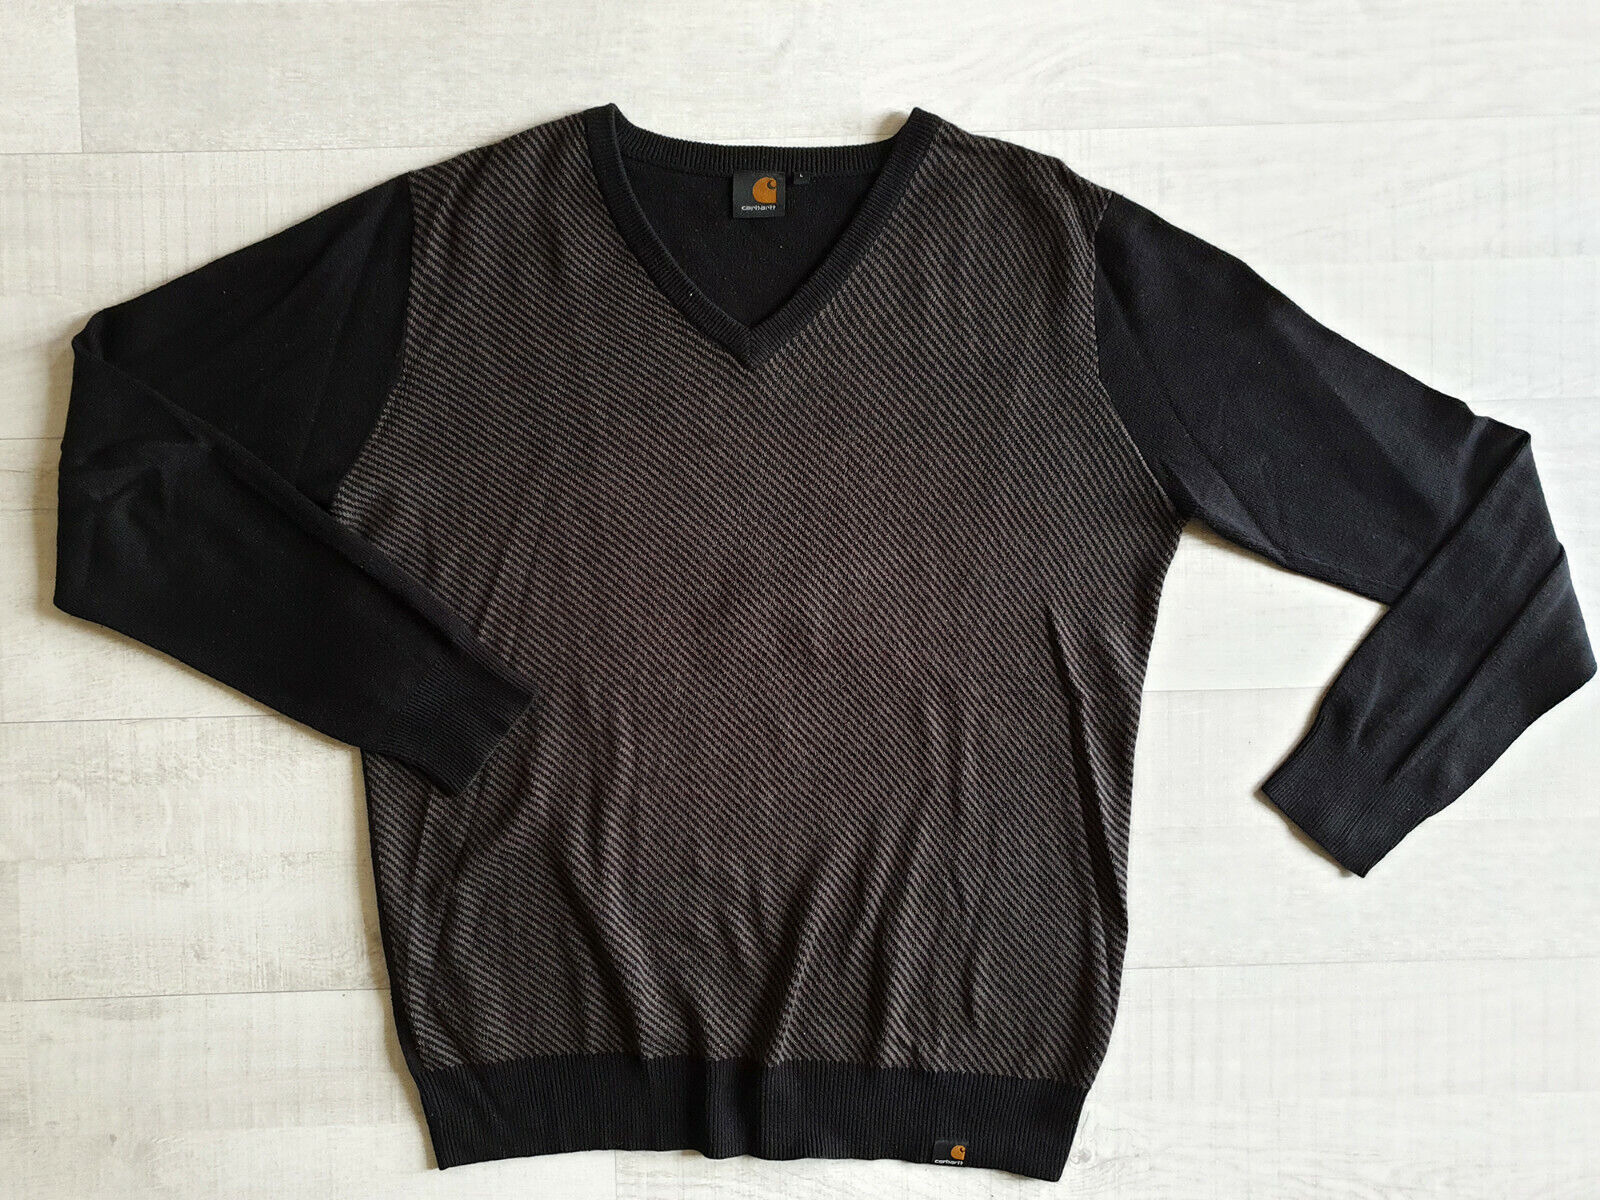 Pull carhartt taille l pour homme, pull col v rayures gris et noir